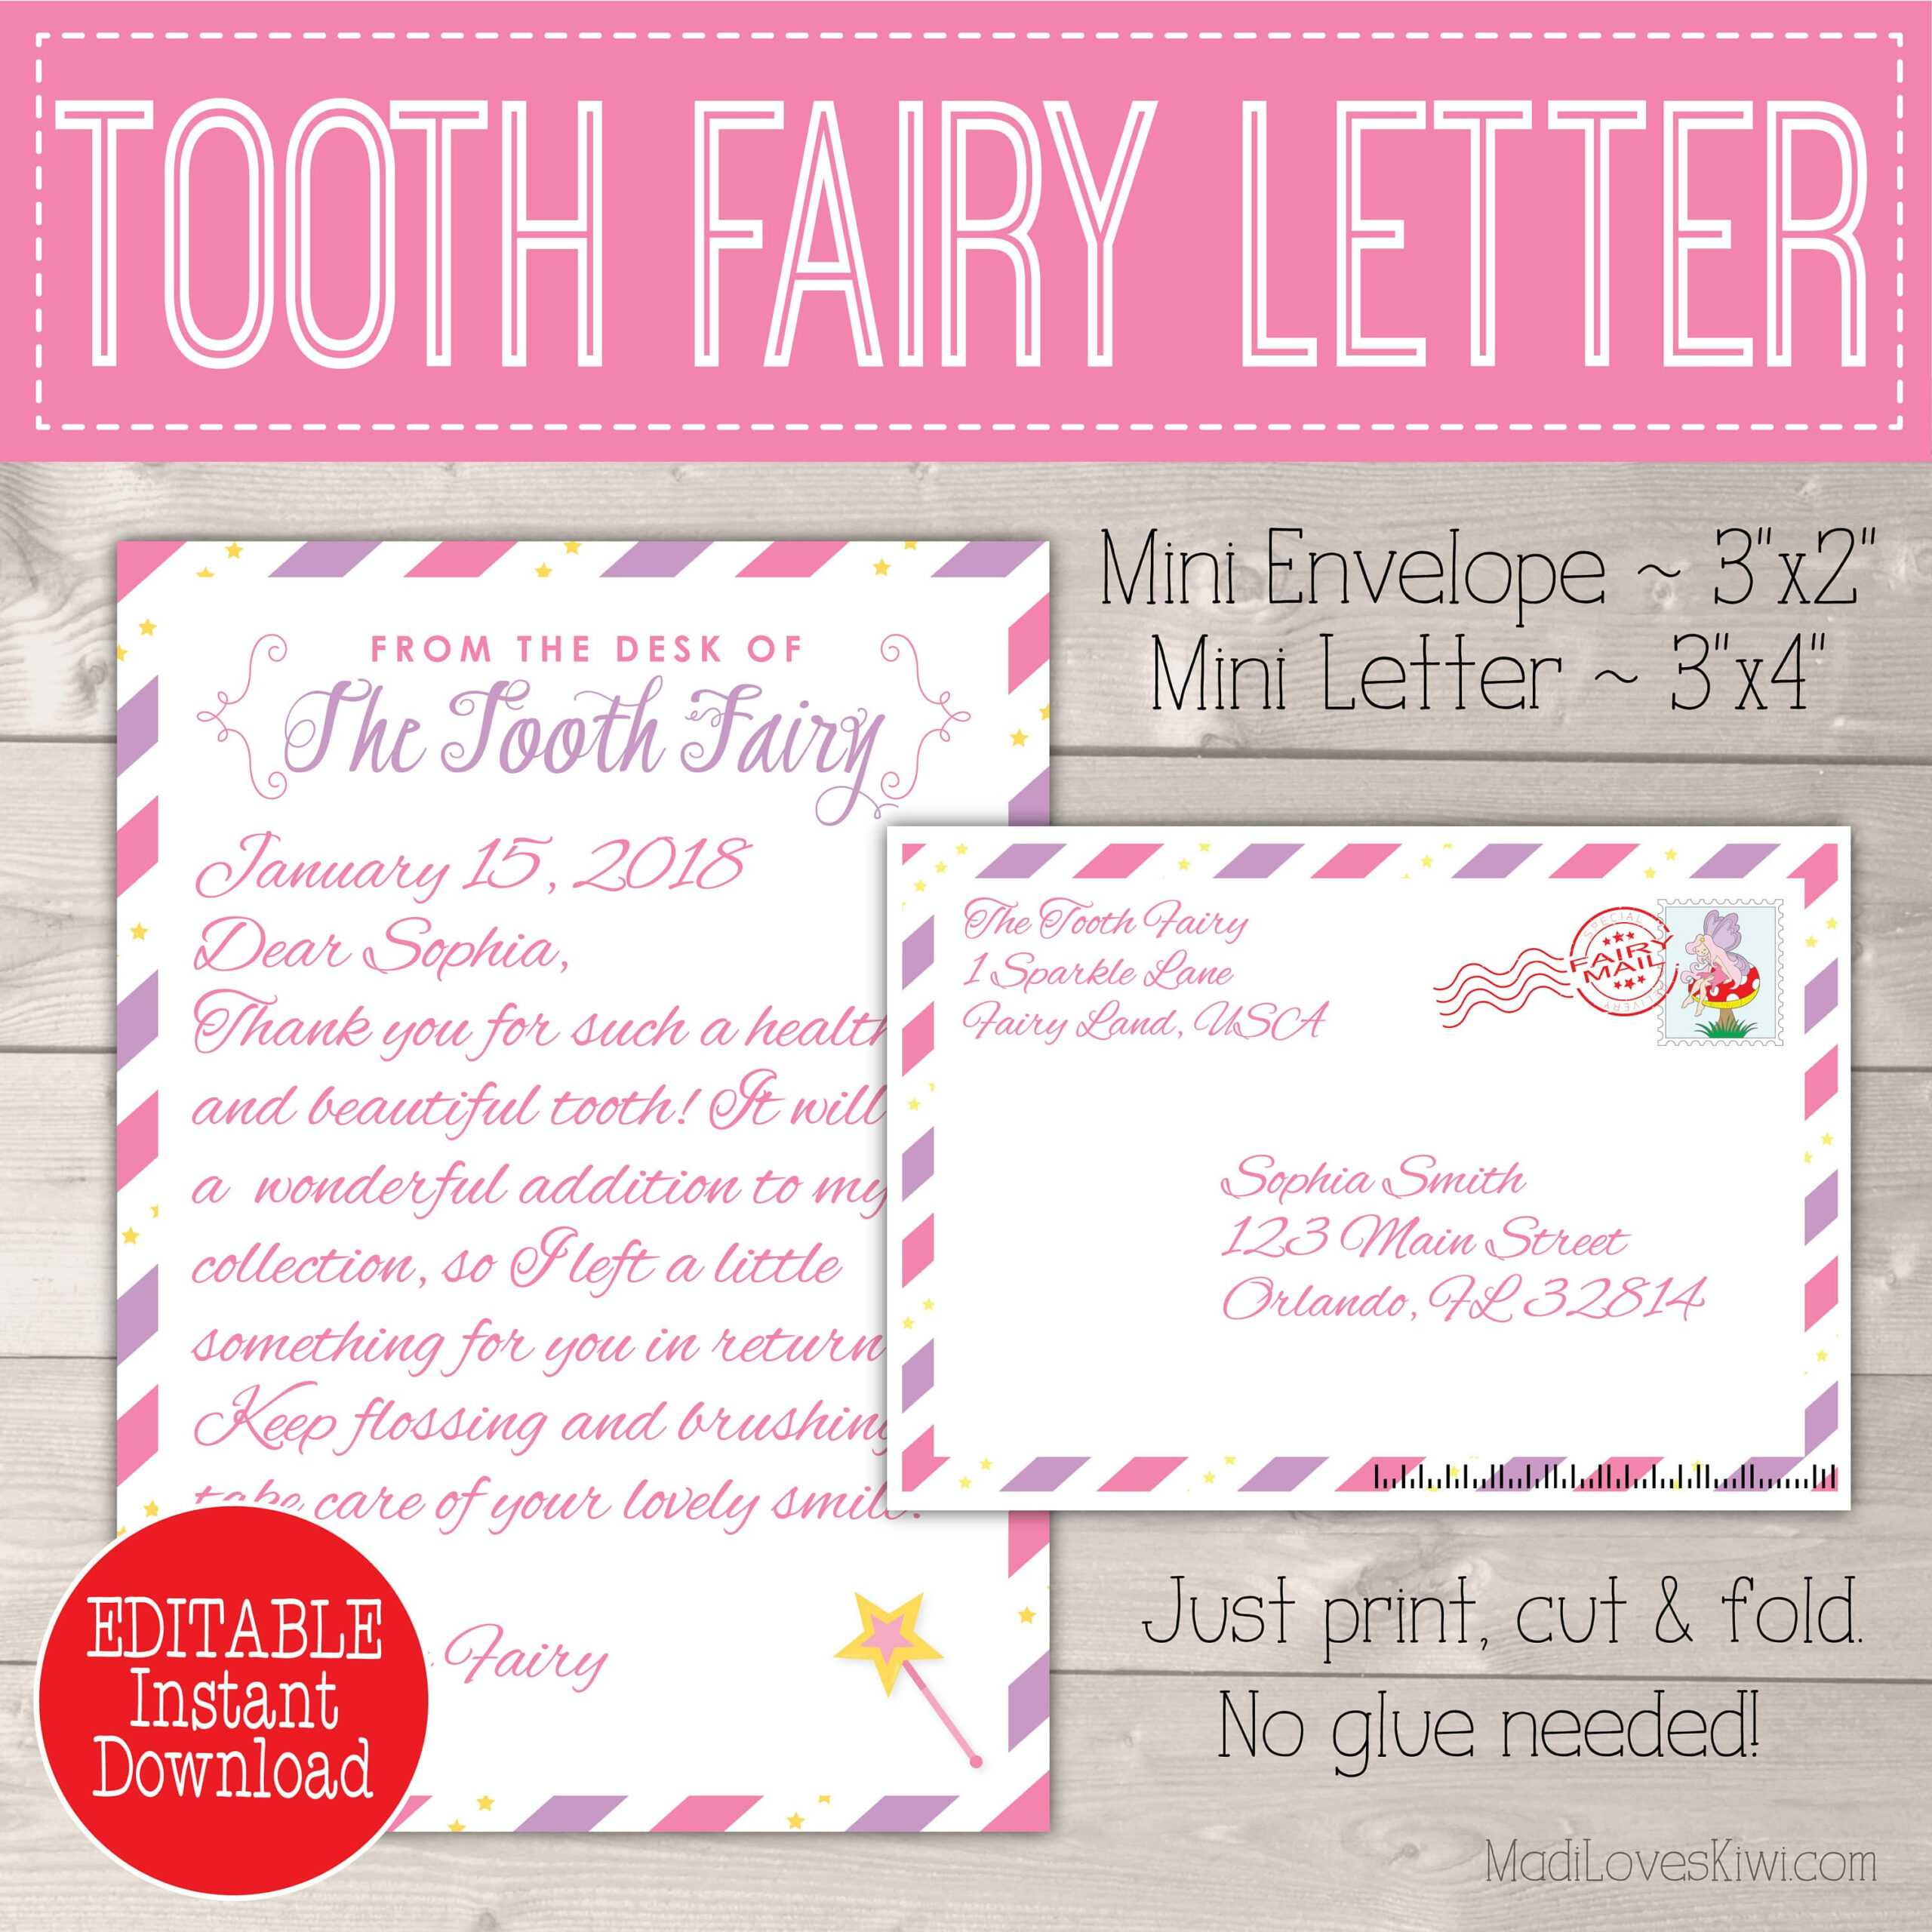 Editable Tooth Fairy Letter With Envelope | Printable Pink With Regard To Tooth Fairy Certificate Template Free